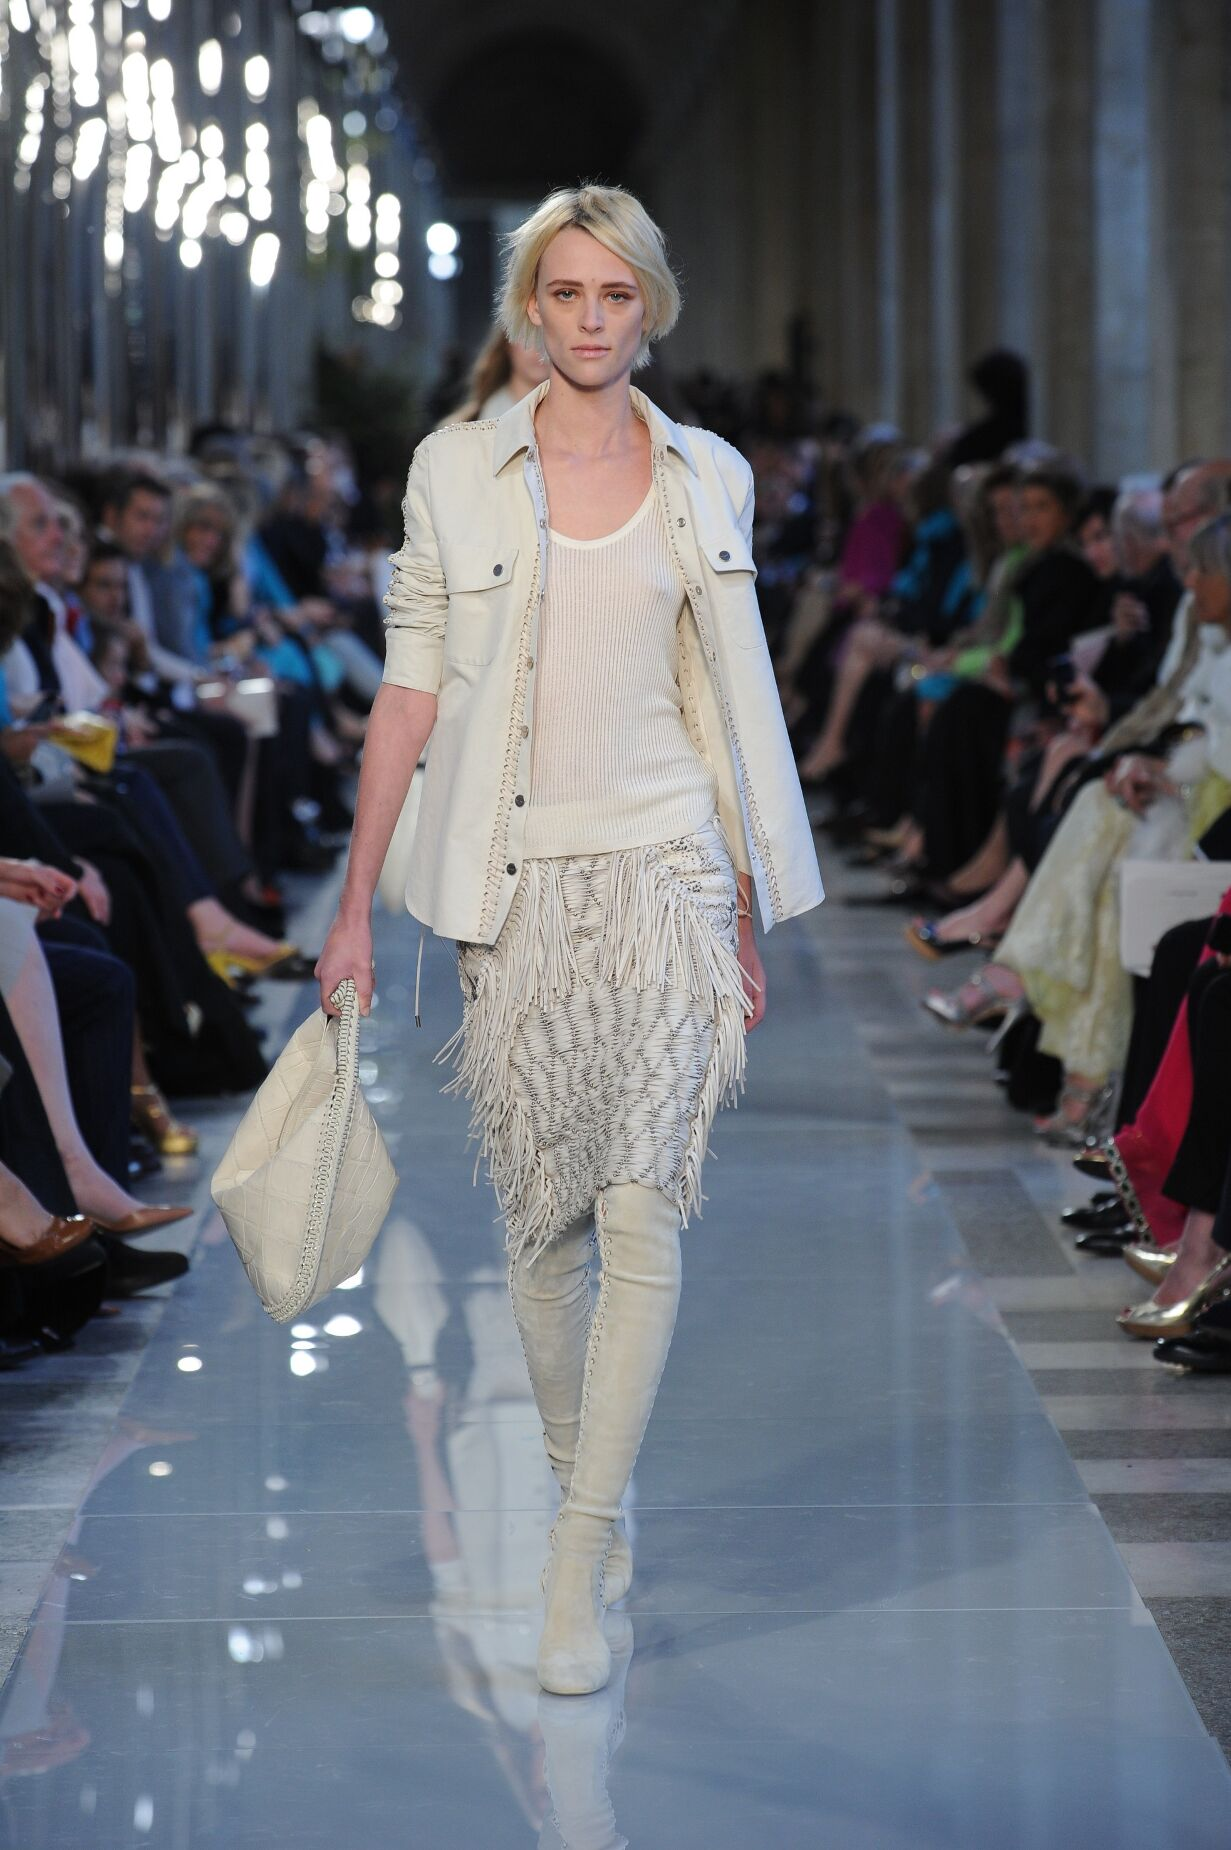 Salvatore Ferragamo SS 2013 Women's Collection